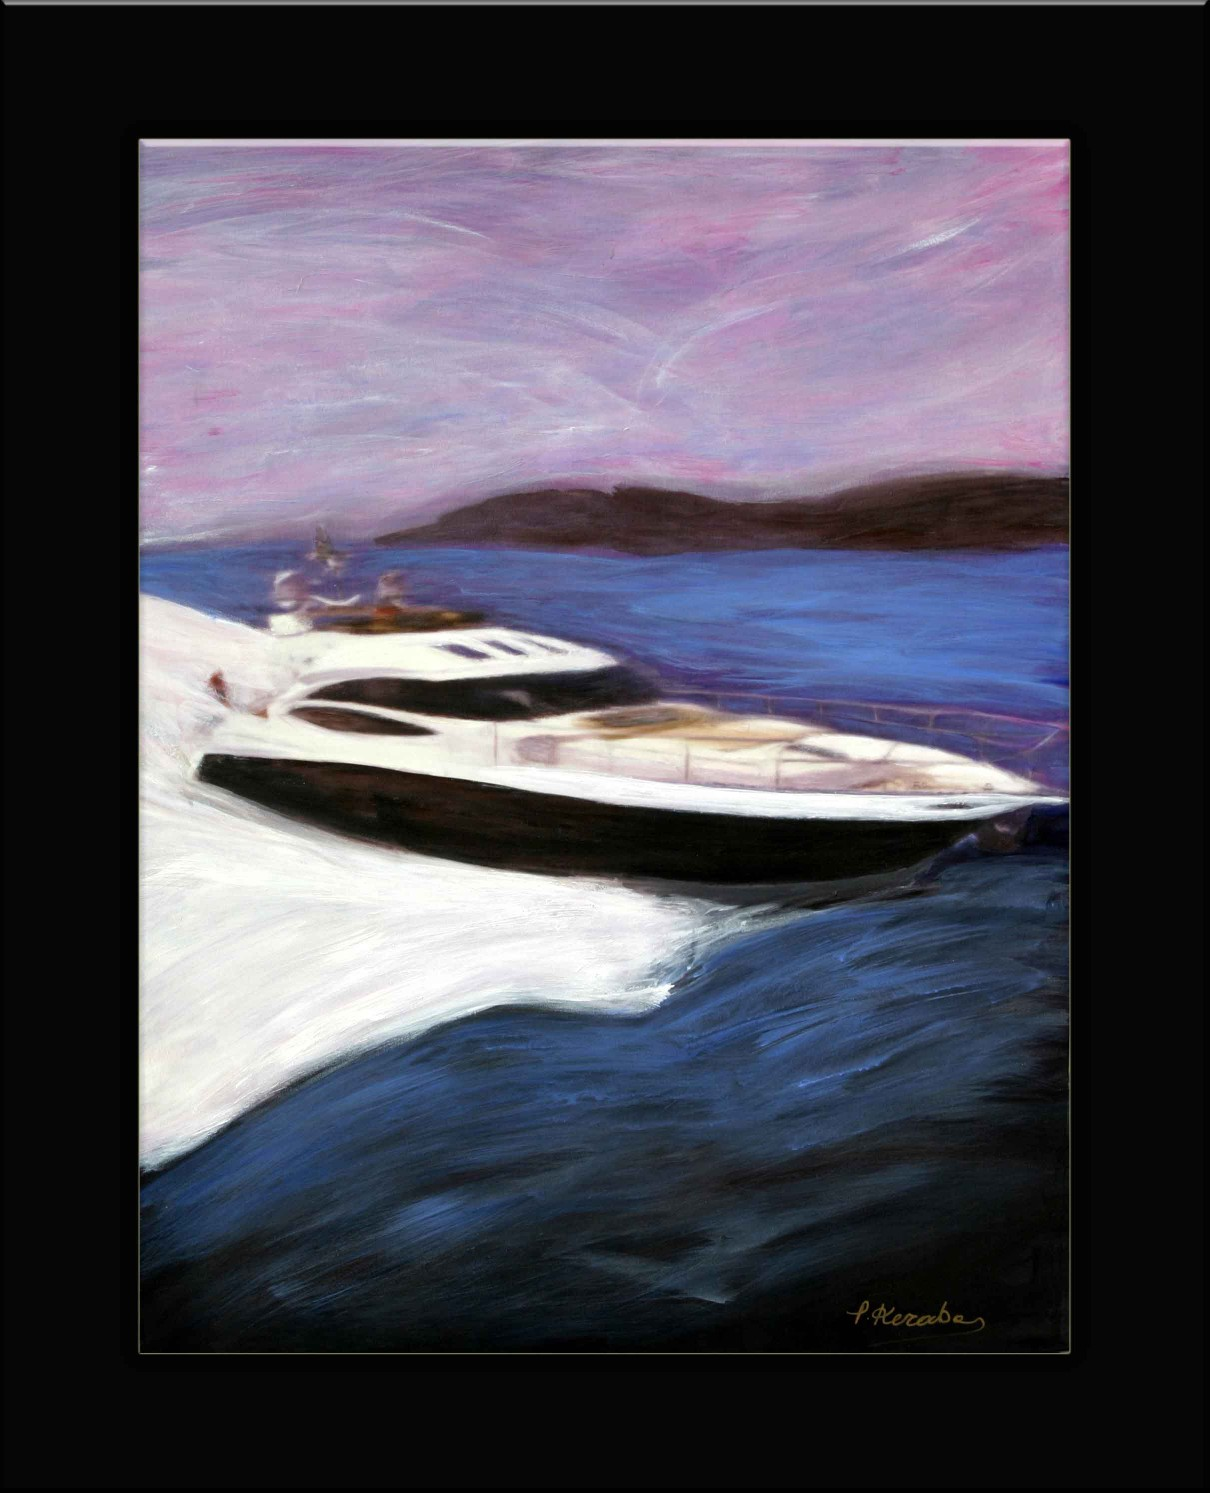 Abstract art yacht princess (1210 x 1493)